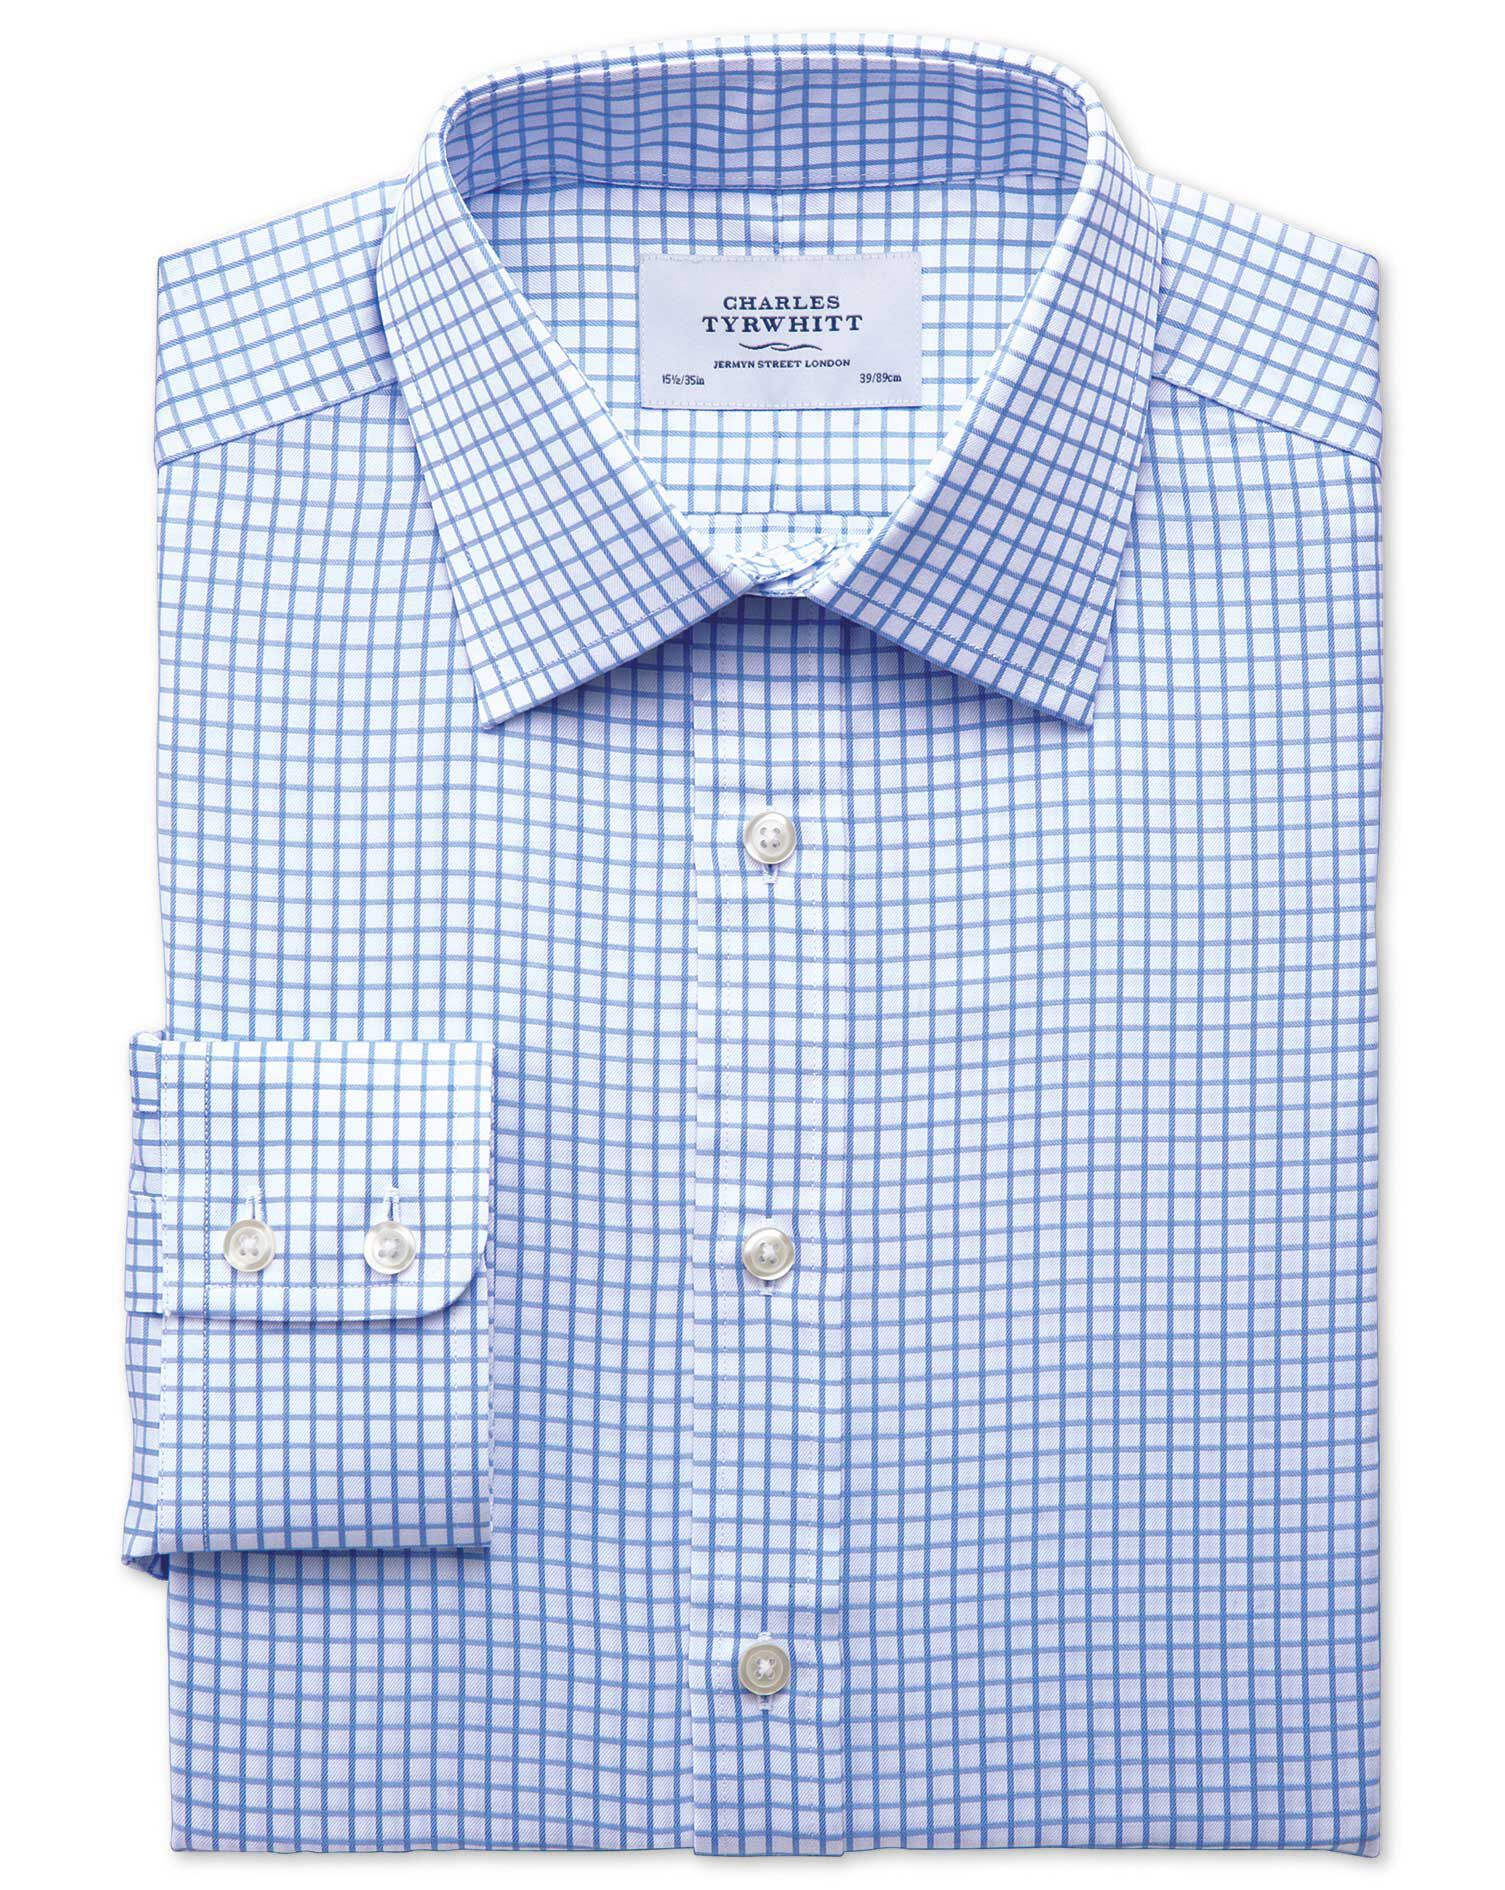 Classic Fit Twill Grid Check Sky Blue Cotton Formal Shirt Single Cuff Size 15.5/32 by Charles Tyrwhi